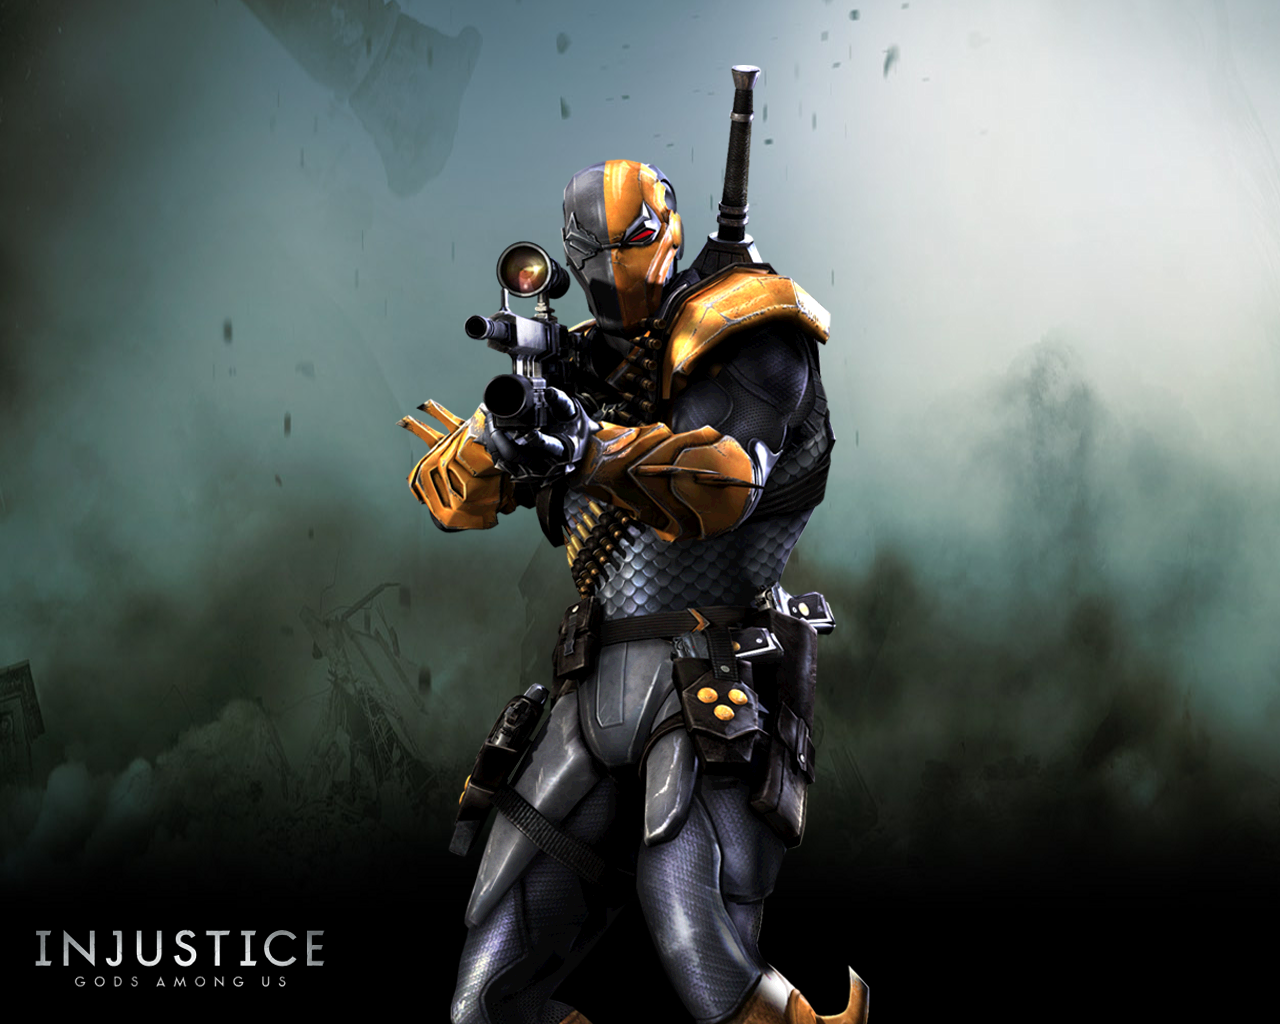 1280x1024px deathstroke wallpapers wallpapersafari game art x injustice gods among us wallpapers 1280x1024 voltagebd Gallery